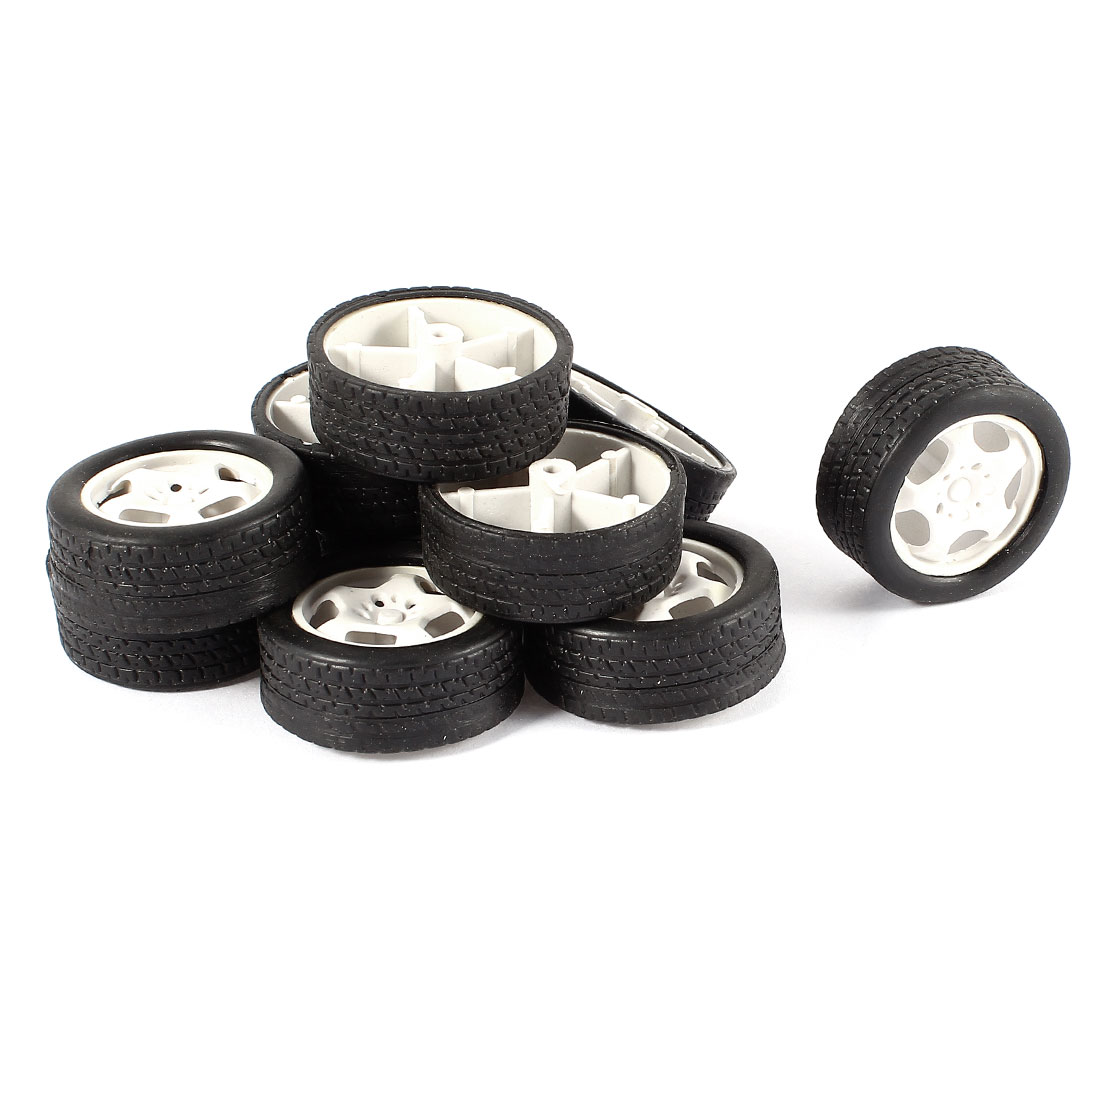 10 Pcs 34mm Dia Rubber Roll Plastic Spoke Car Auto Model Toys Wheels